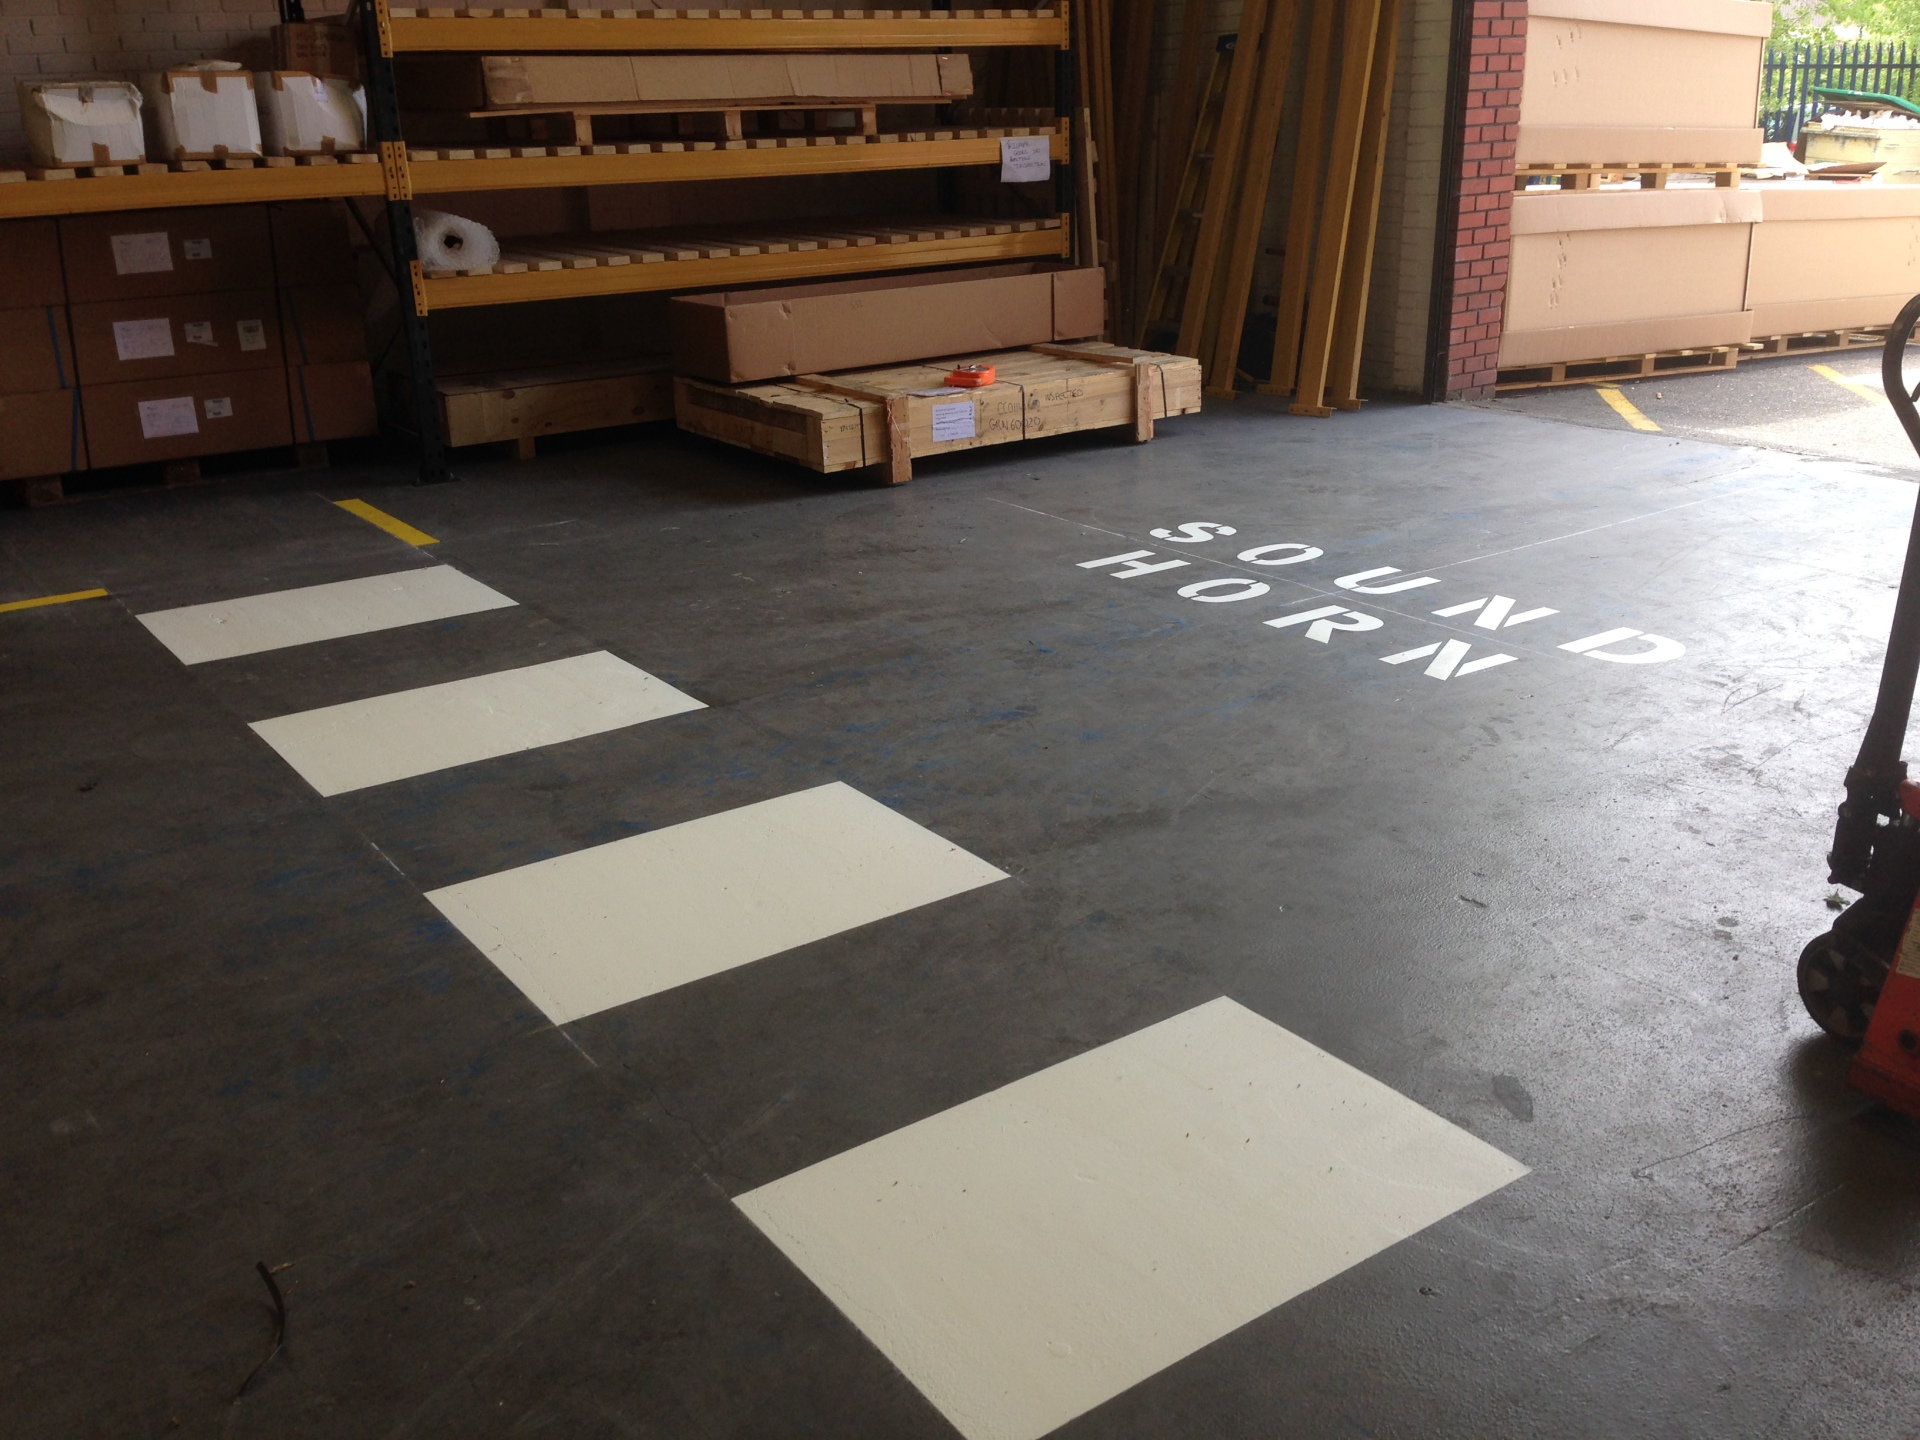 Warehouse markings - Ash, Surrey